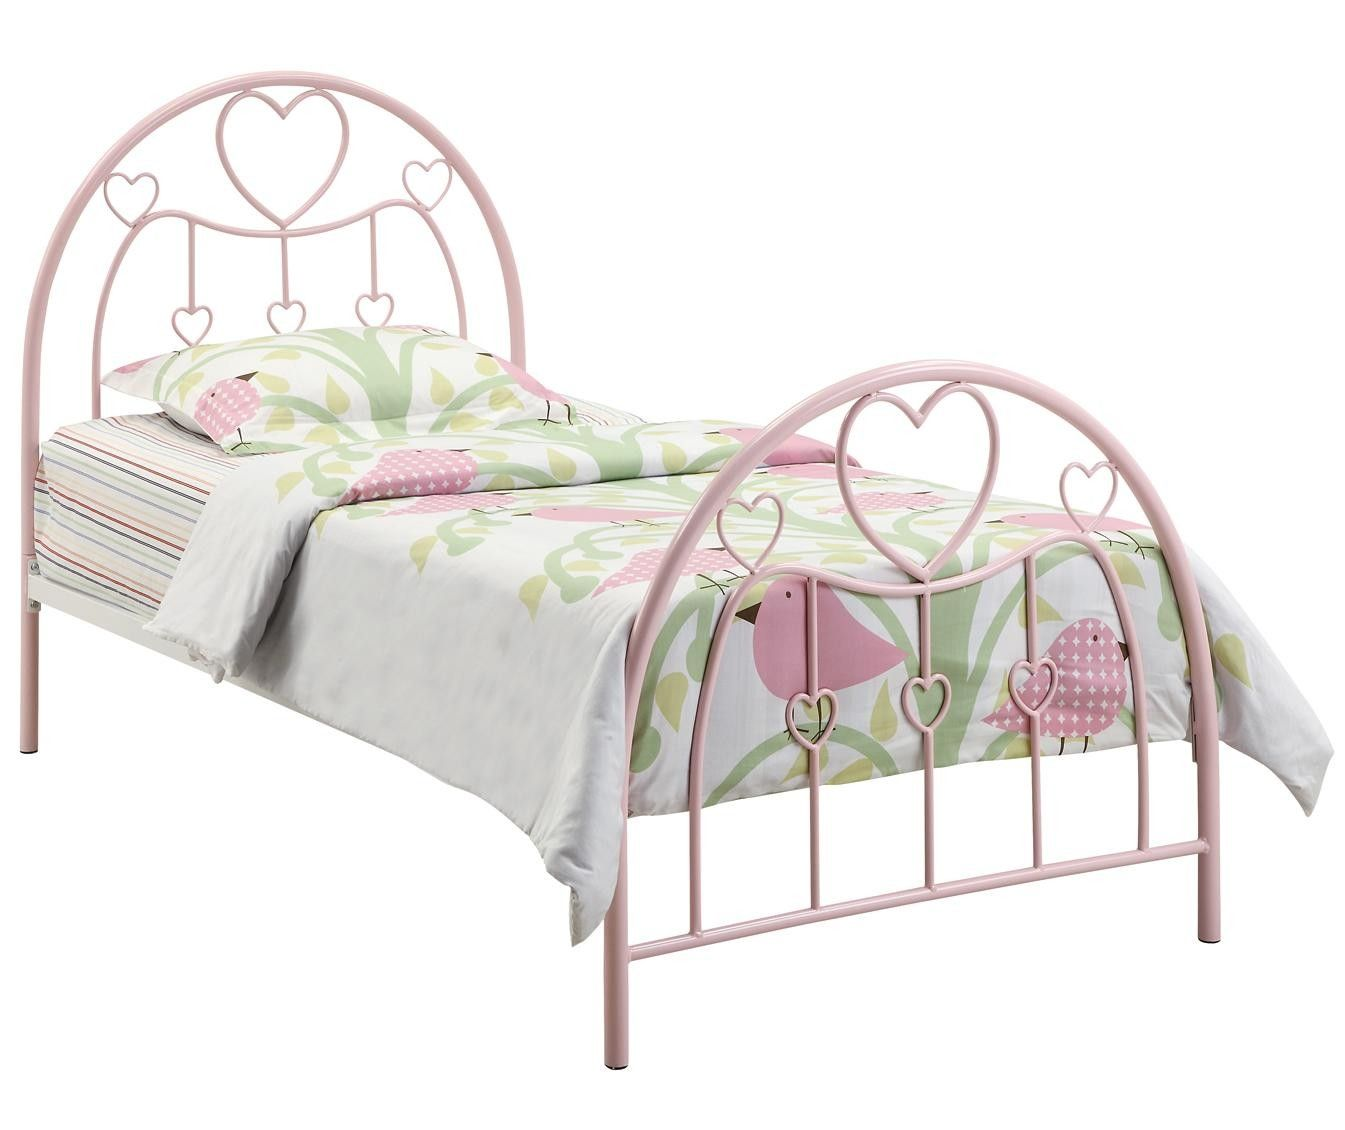 Coaster Juliette Twin Metal Bed With Pink Heart Motifs 400571t Coaster Juliette Twin Metal Bed With Pink Heart Motifs 400571tnothing Bed Metal Beds Iron Bed